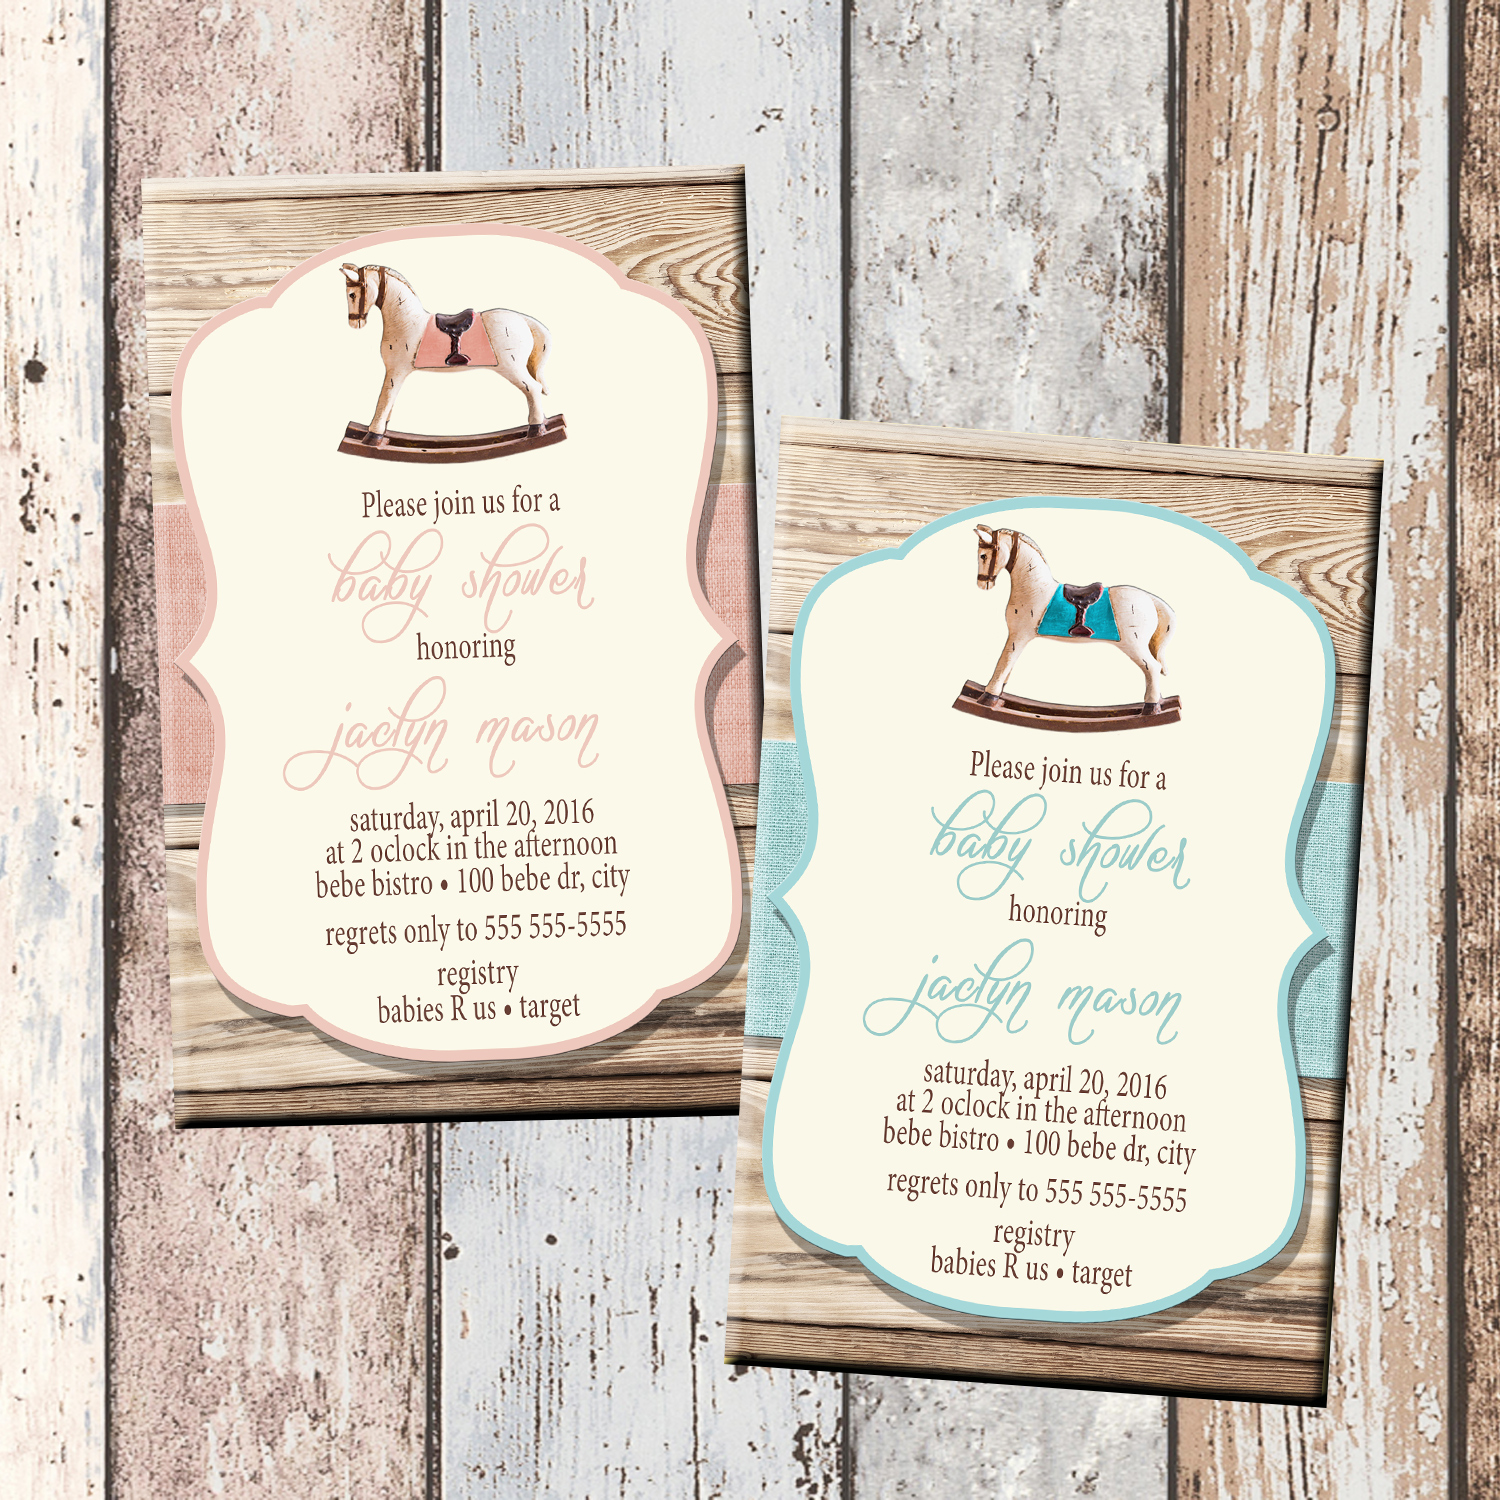 Rockin Horse Baby Shower Invitation 1 Sided Scg Designs